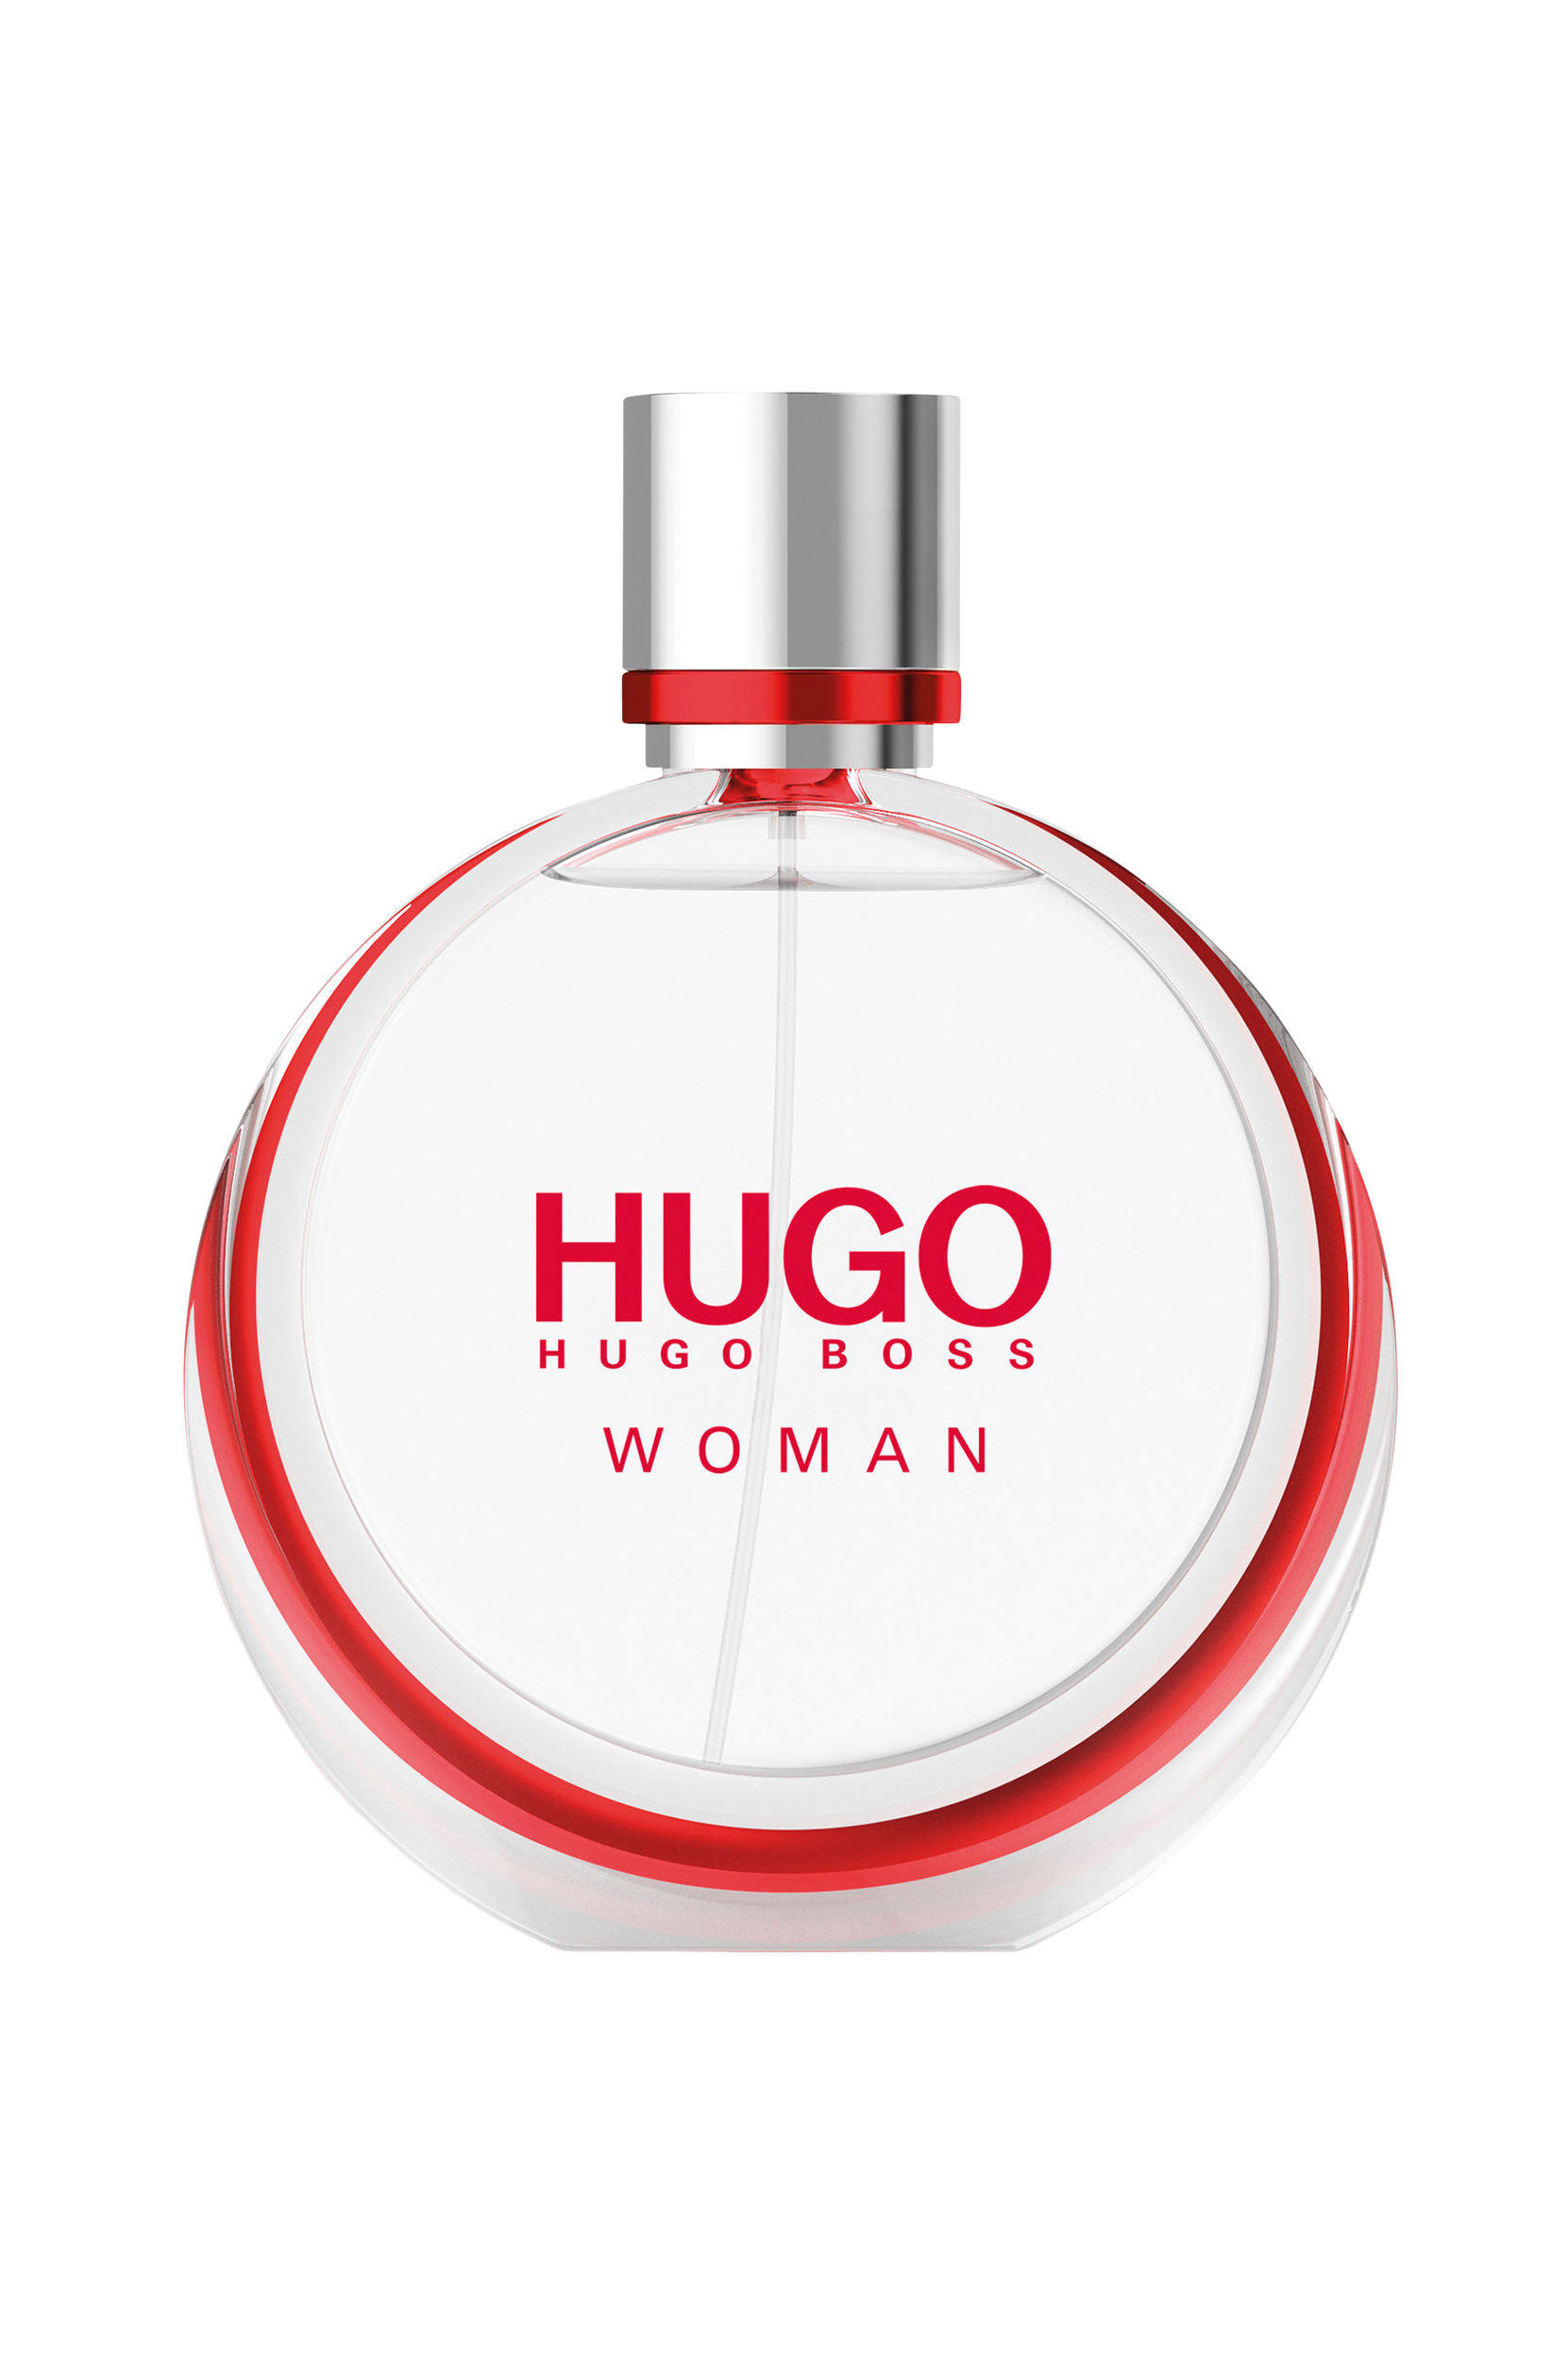 Hugo Woman Edp 50ml Hugo Boss Parfumer til Kvinder i